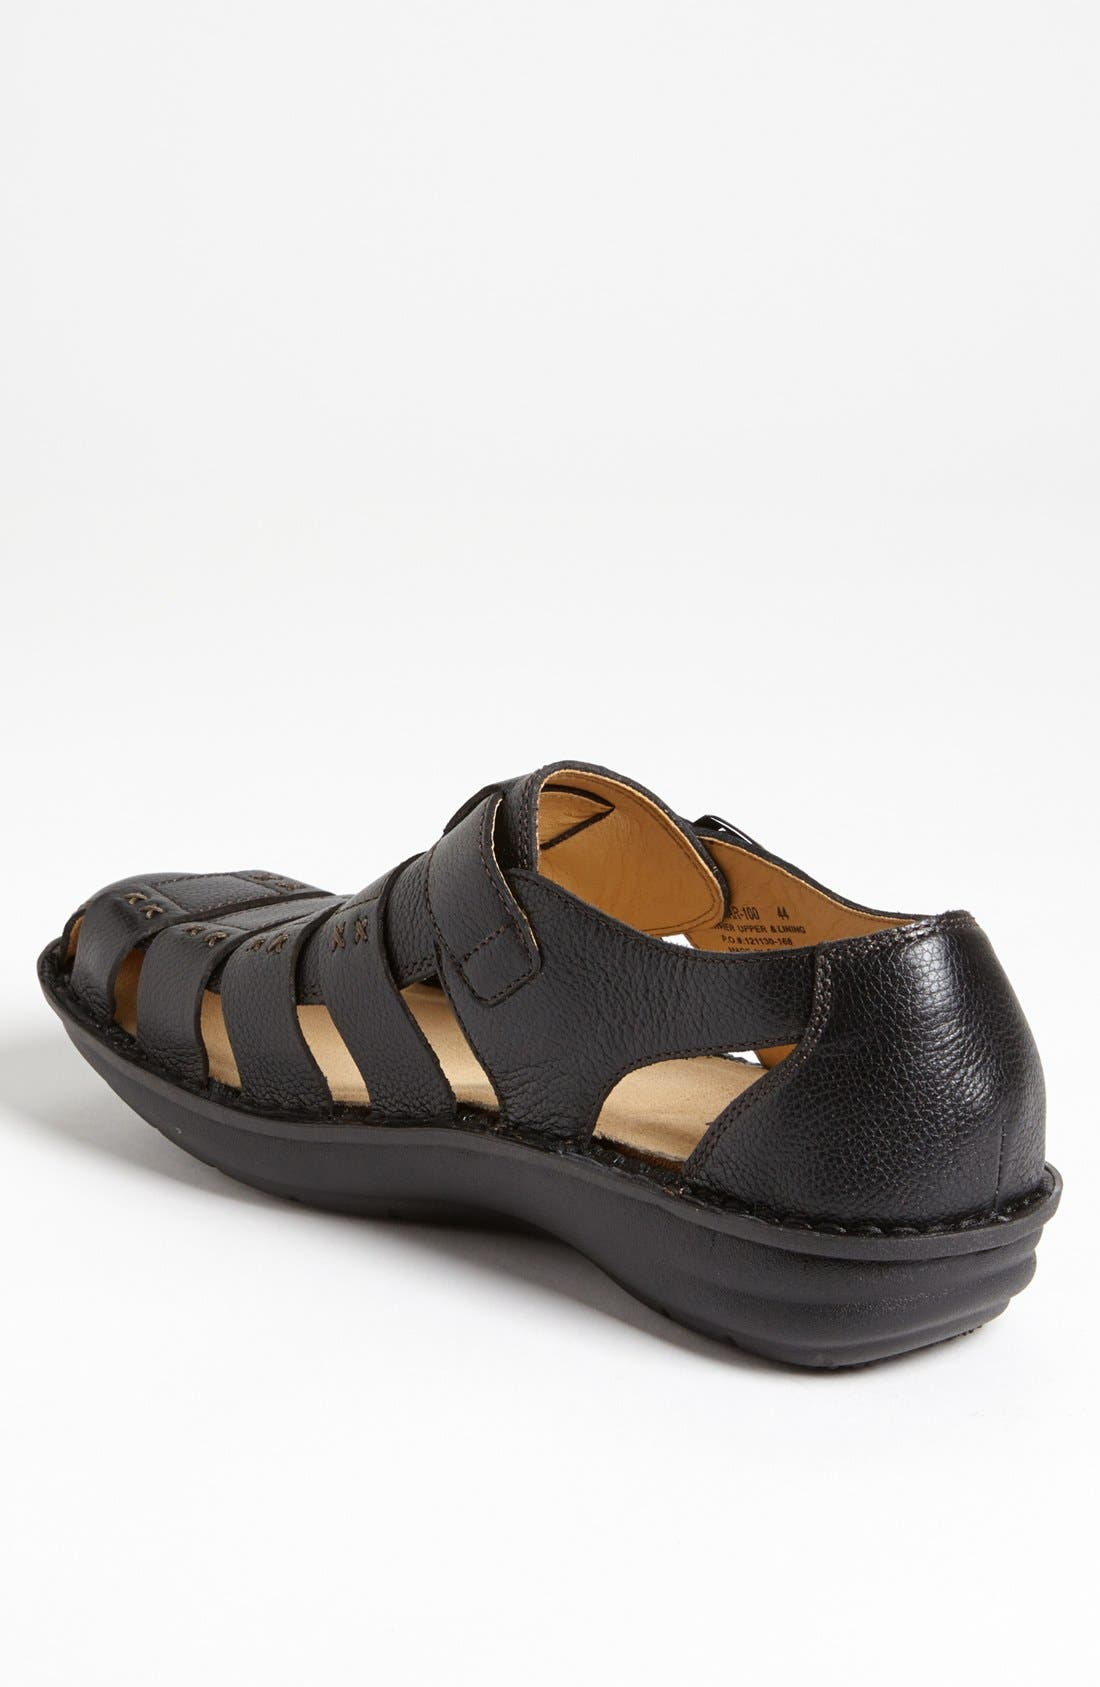 Alternate Image 2  - Alegria 'Martinique' Sandal (Men)